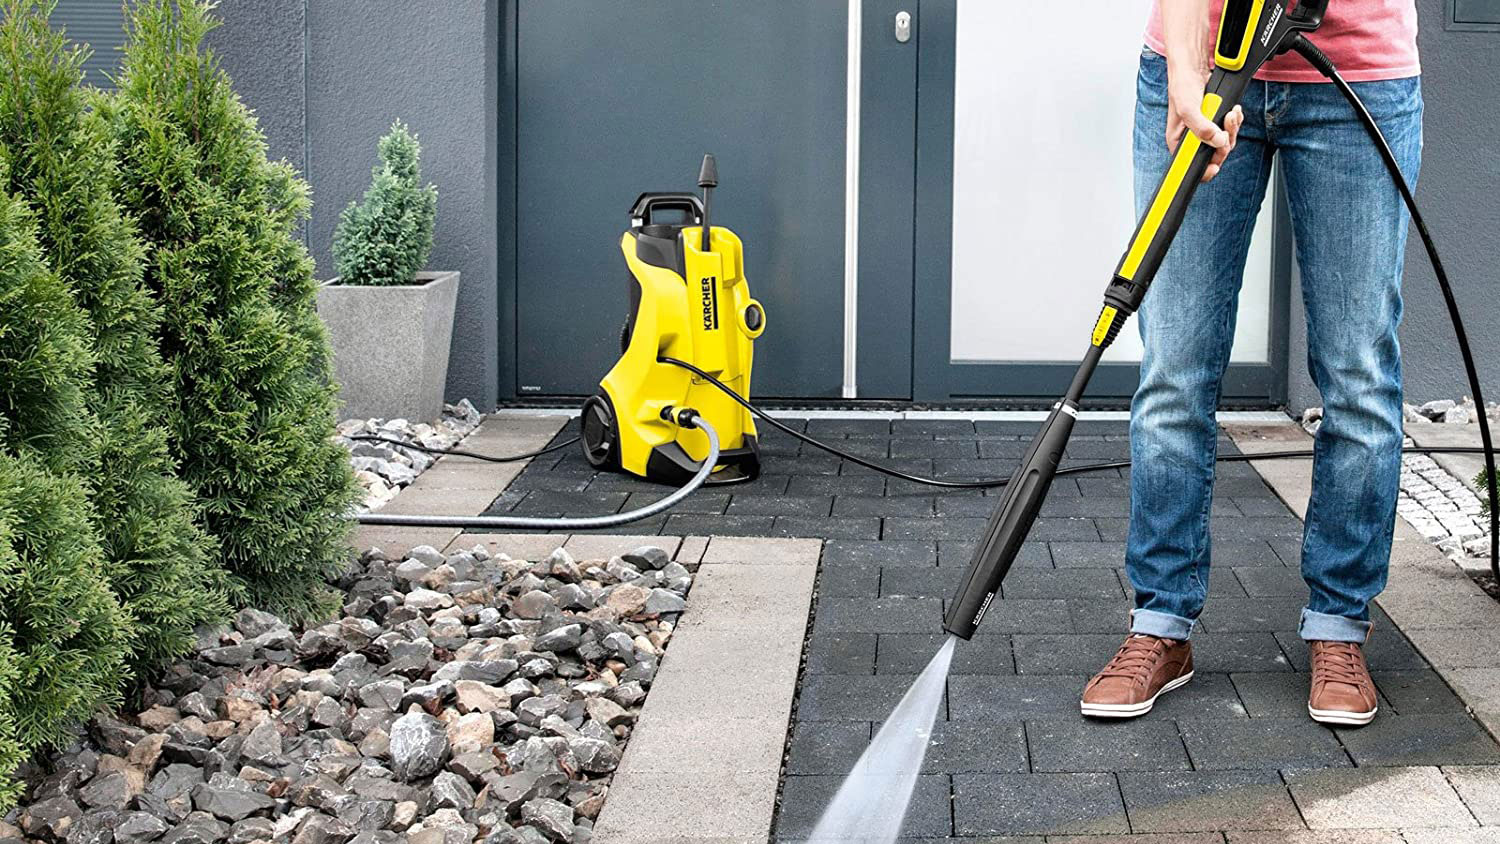 Pressure Washer Manual – Read Before Using A Pressure Washer